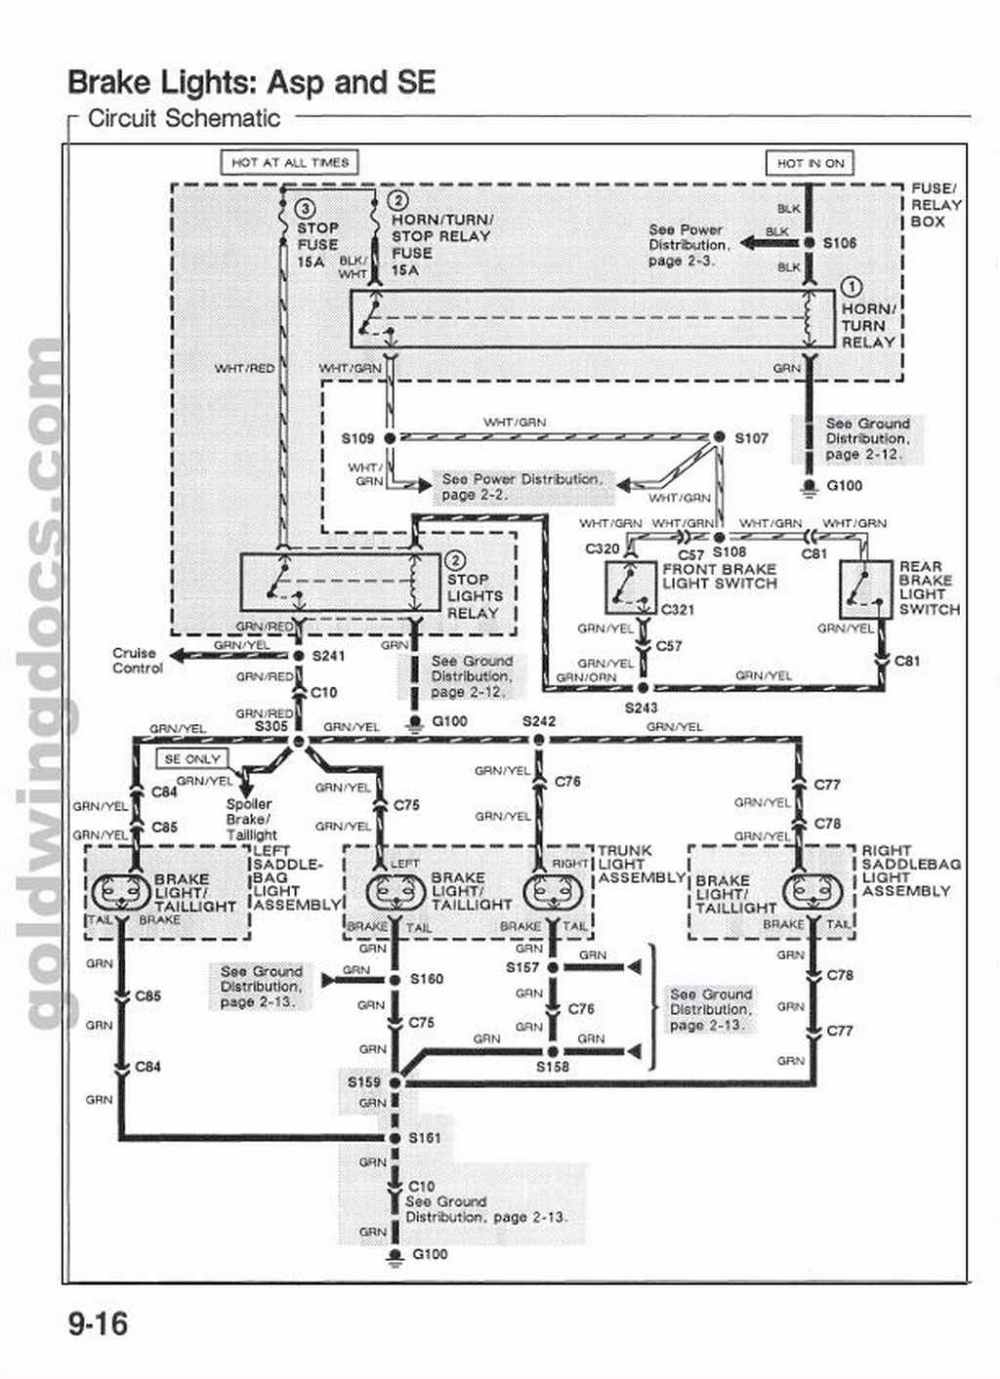 medium resolution of 1992 gl1500 wiring diagram wiring diagram third level rh 8 8 16 jacobwinterstein com 1995 honda goldwing wiring diagram honda goldwing 1500 wiring diagrams